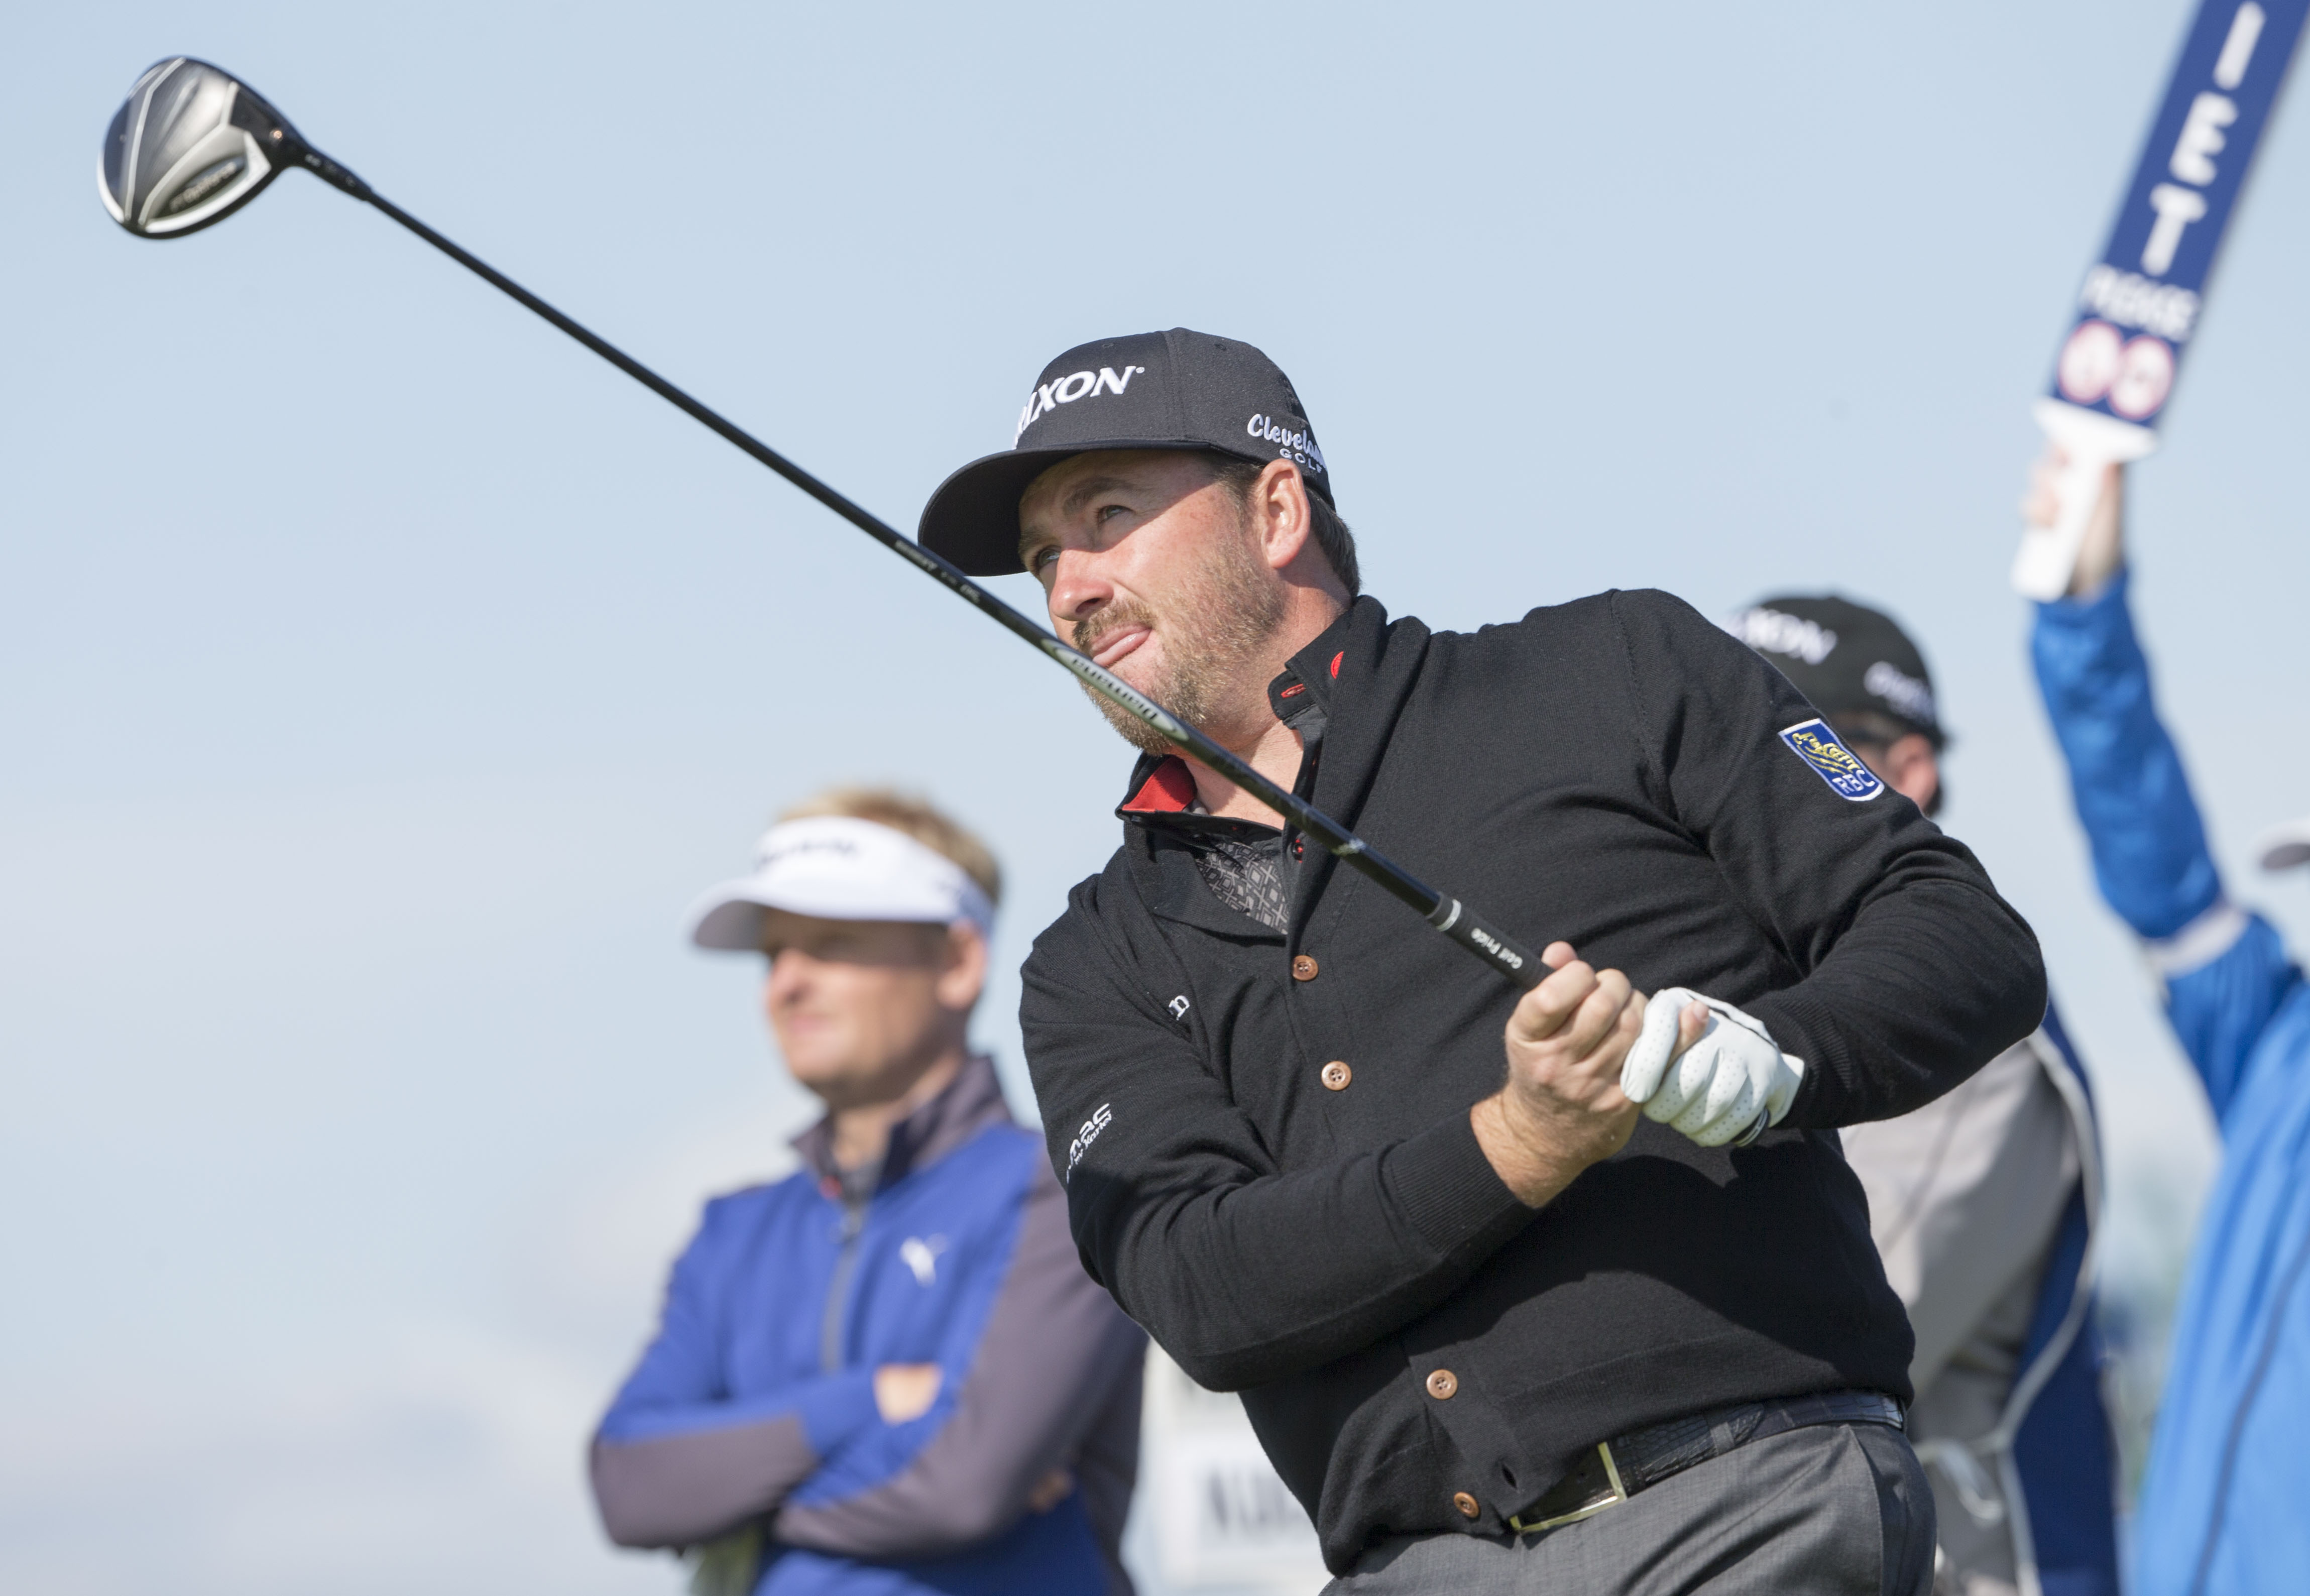 Northern Ireland's Graeme McDowell tees off at the 5th hole during day one of the Scottish Open at Gullane Golf Club, in Gullane Scotland Thursday July 9, 2015. (Kenny Smith/PA via AP) UNITED KINGDOM OUT  NO SALES NO ARCHIVE